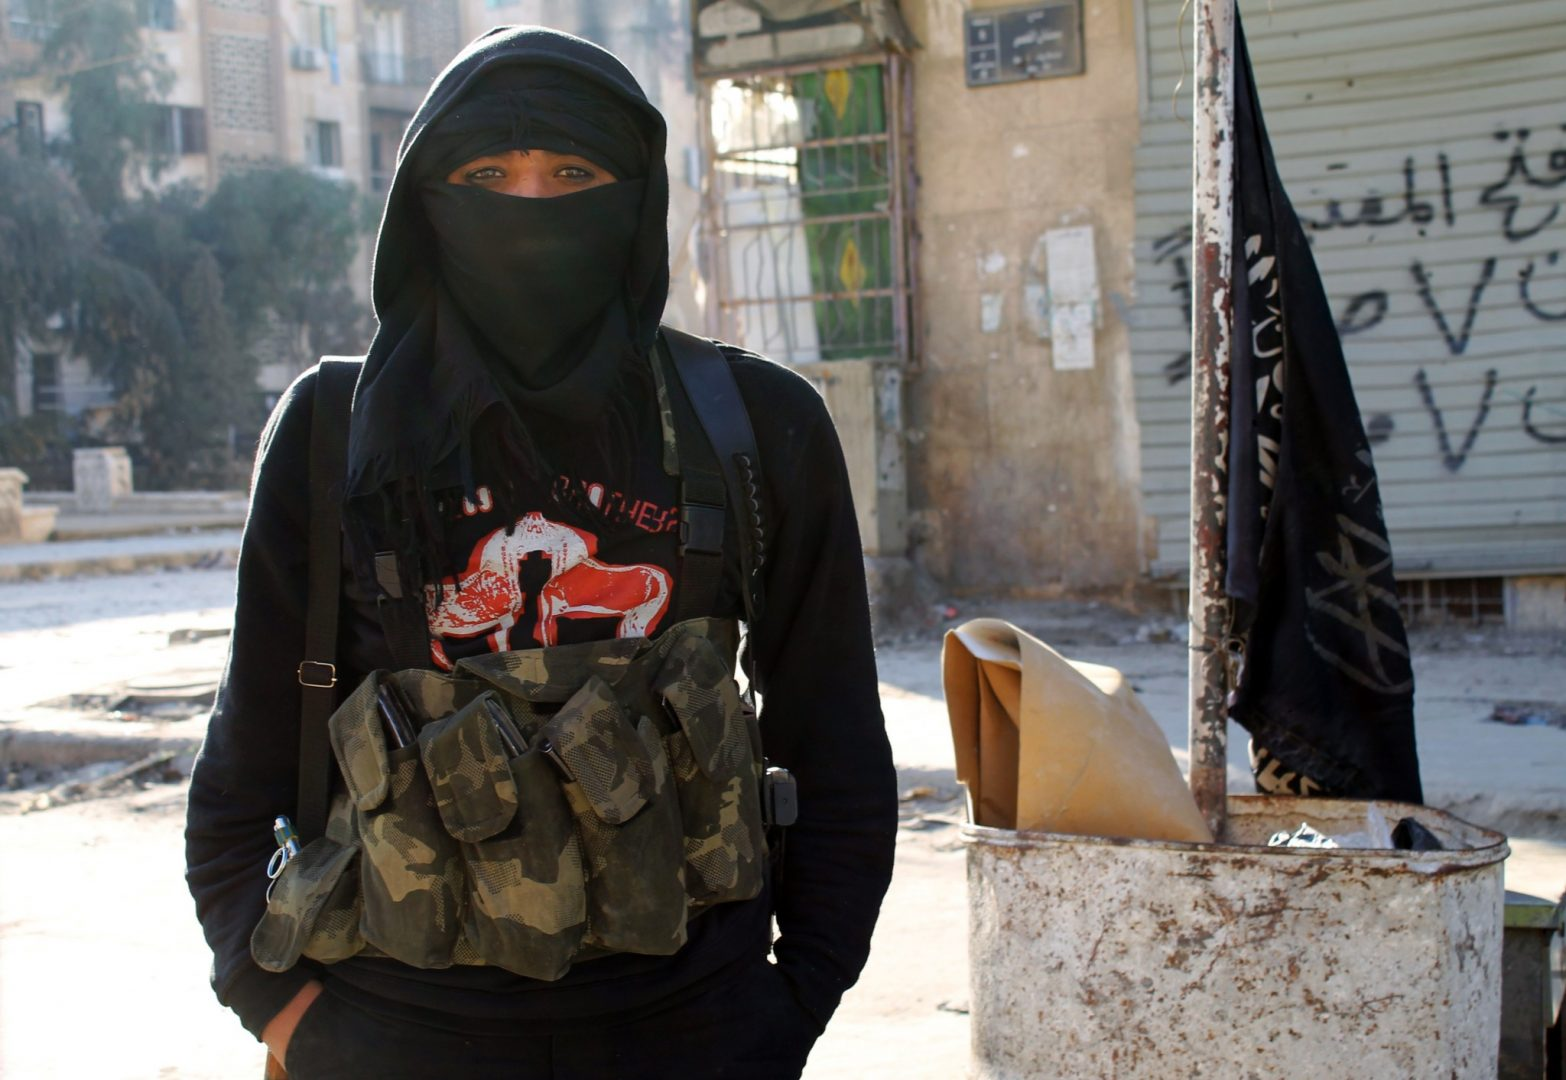 ISIS have changed their policies on women taking up combat roles, reports suggest – Loaded